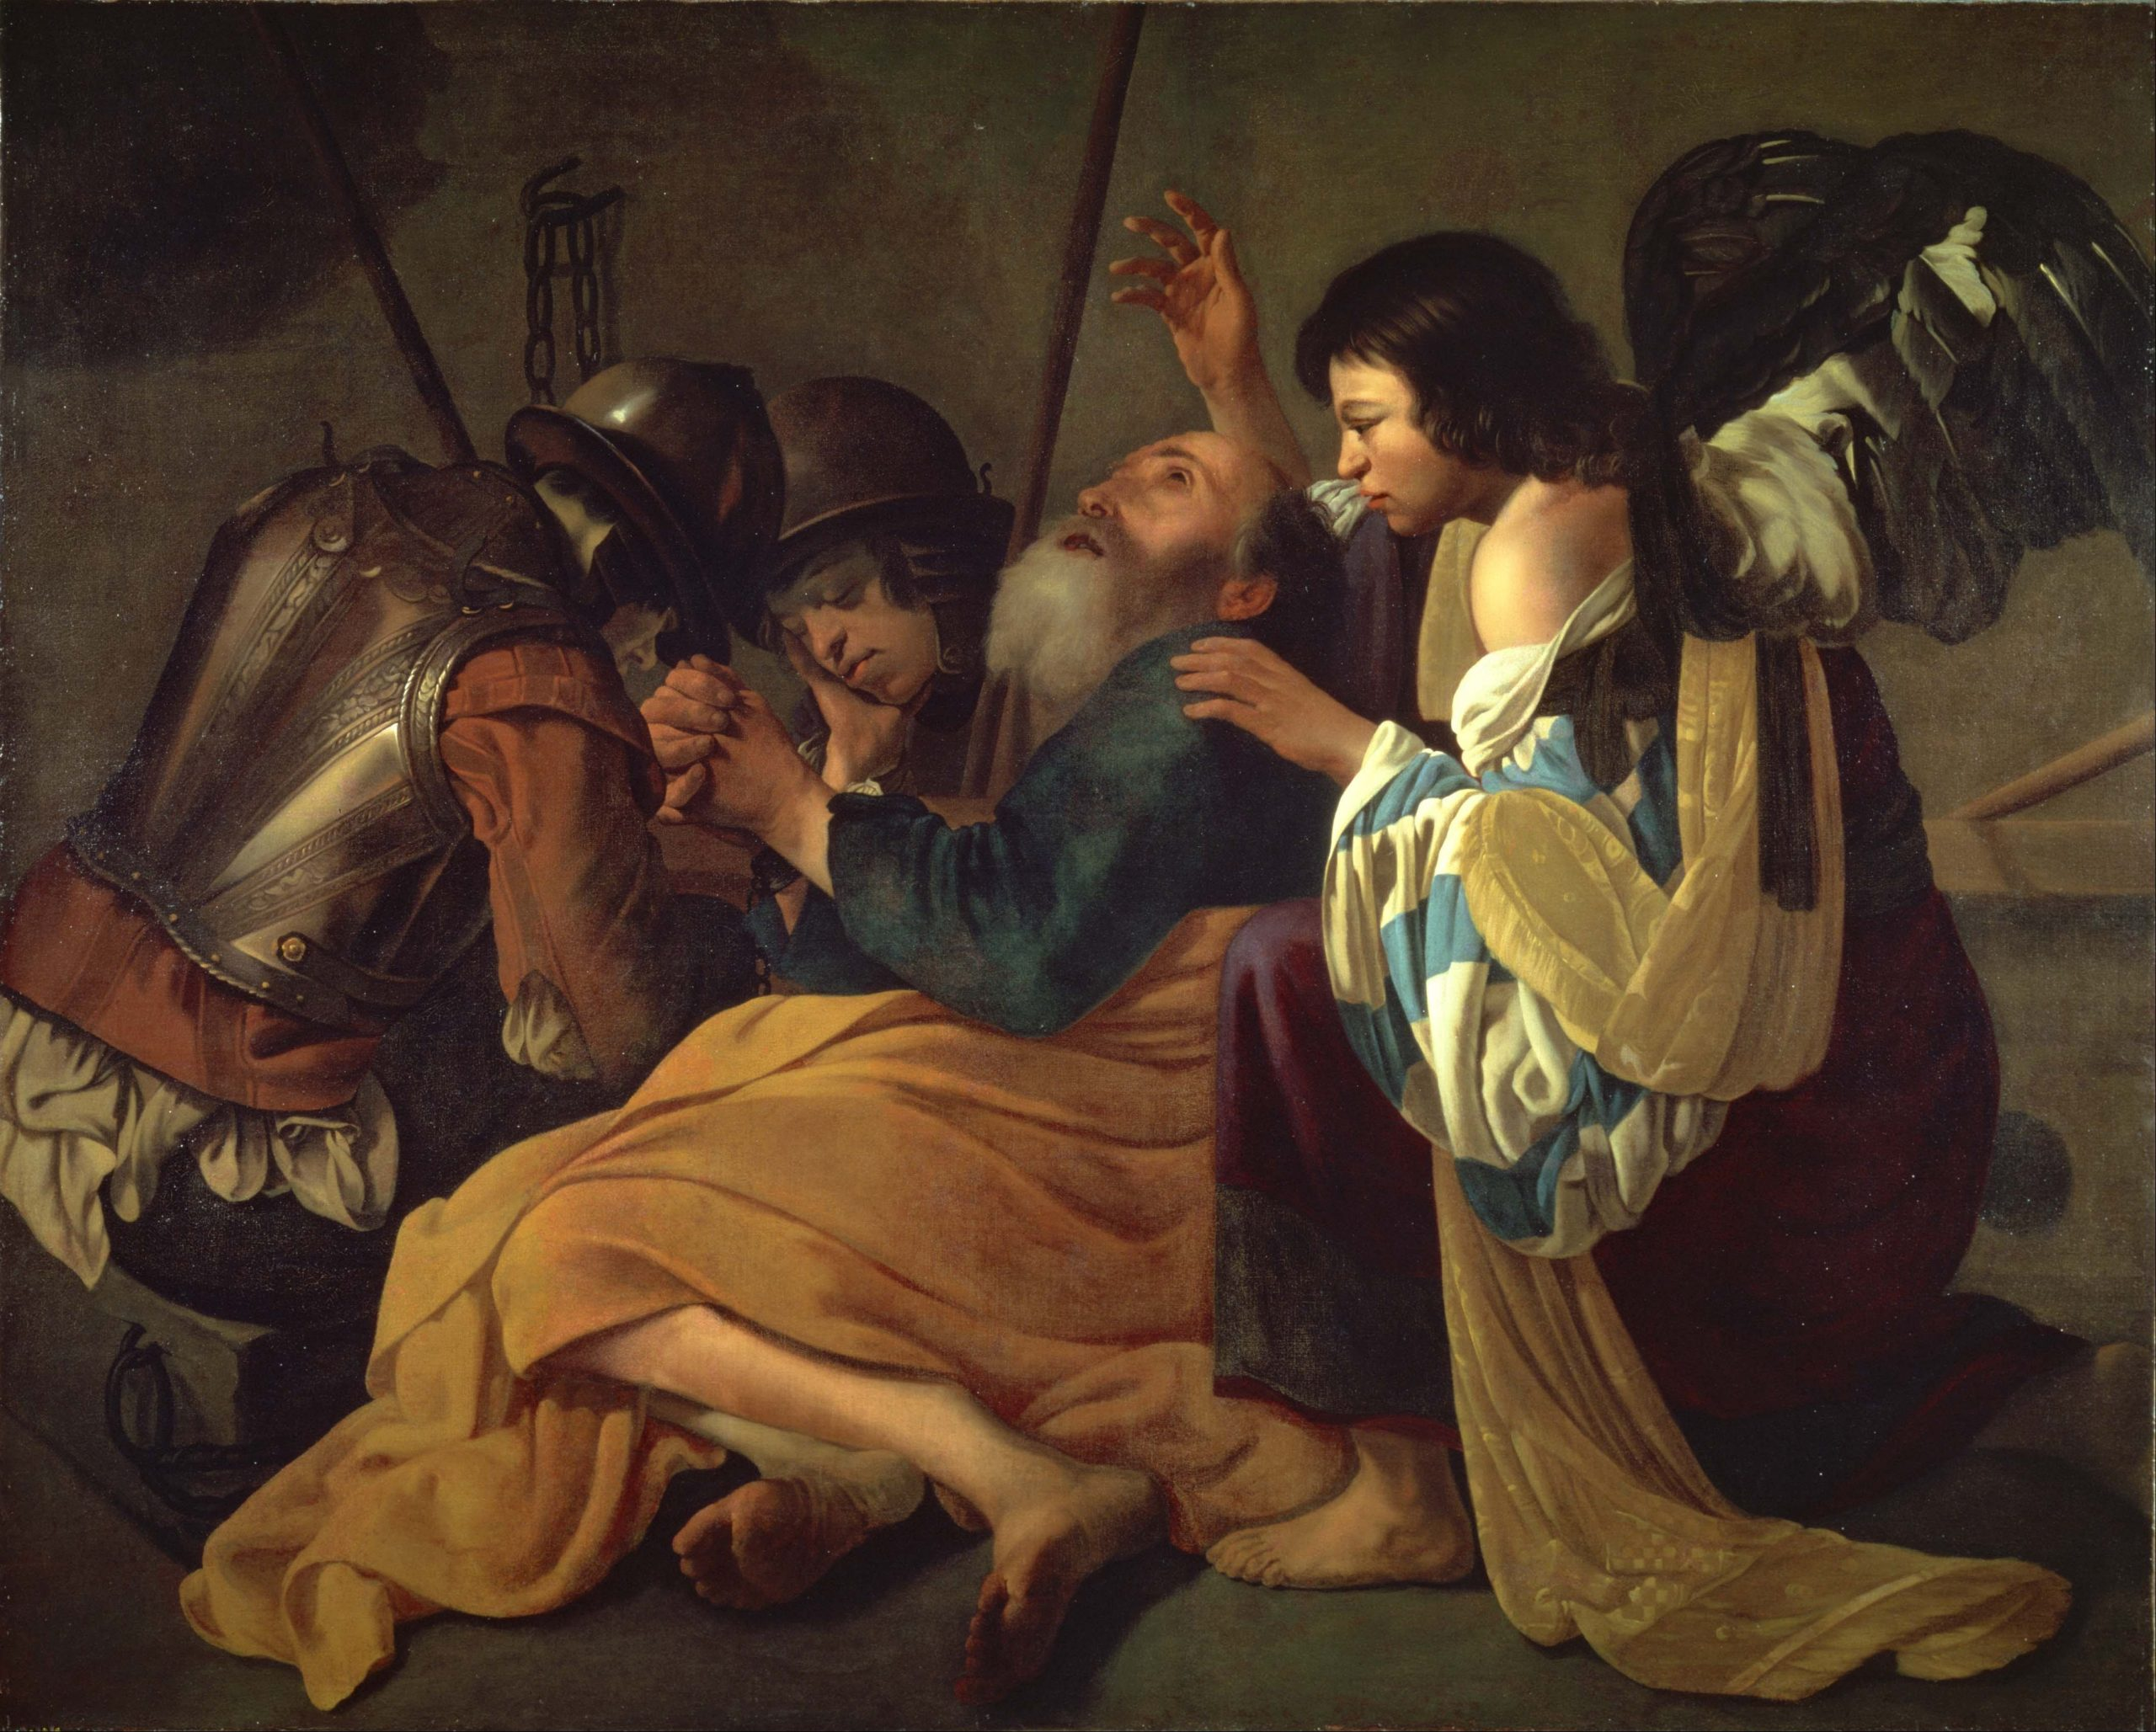 Hendrick Terbrugghen, The Liberation of Saint Peter